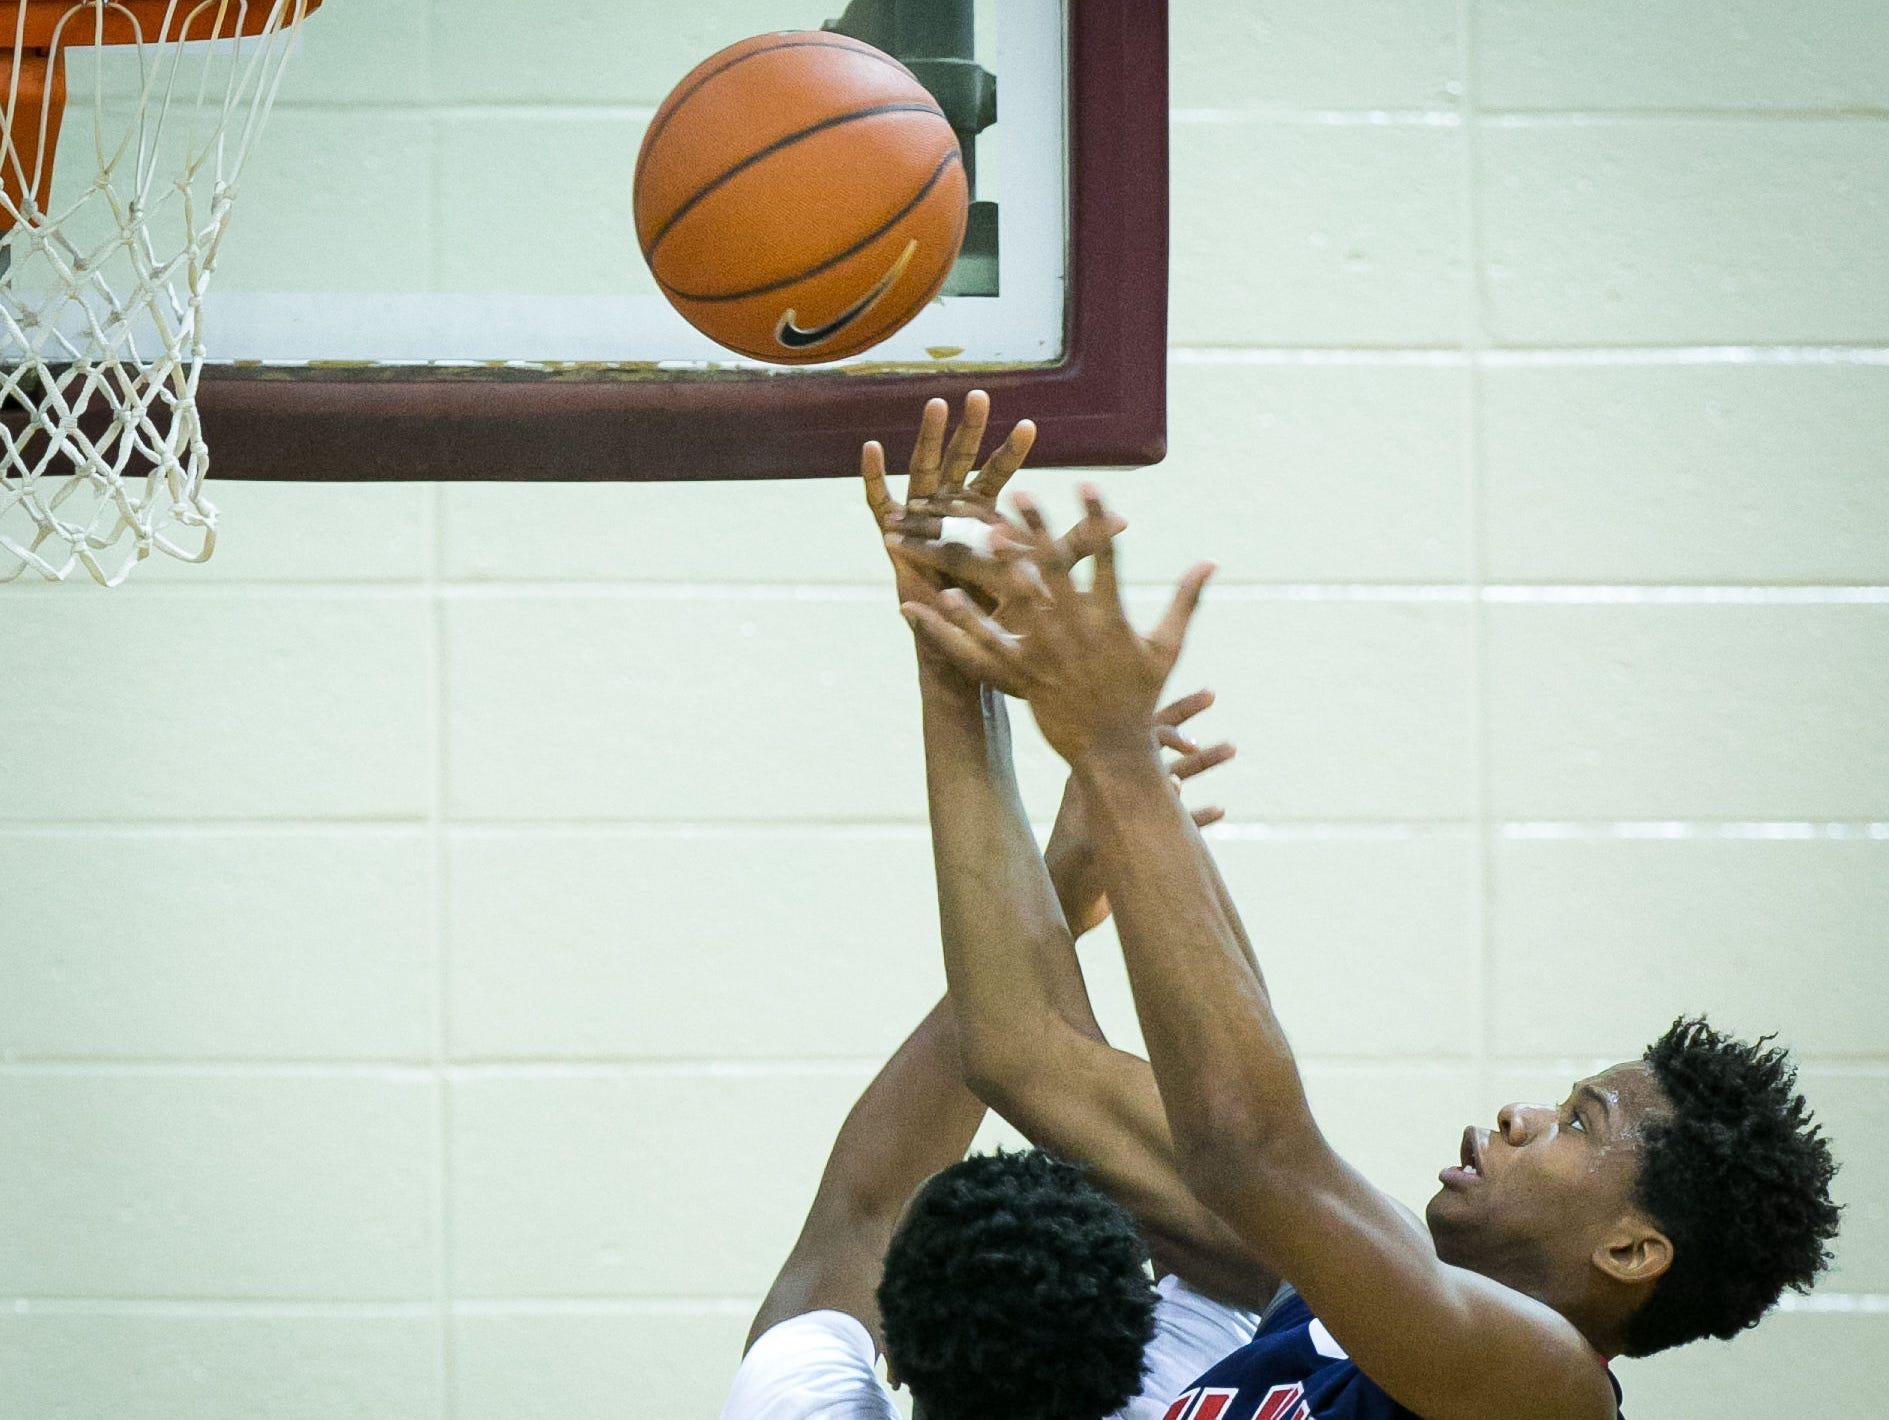 Yvens Monfluery (right) of American History gets fouled by Richard Caldwell of Mount Pleasant as he drives to the basket.